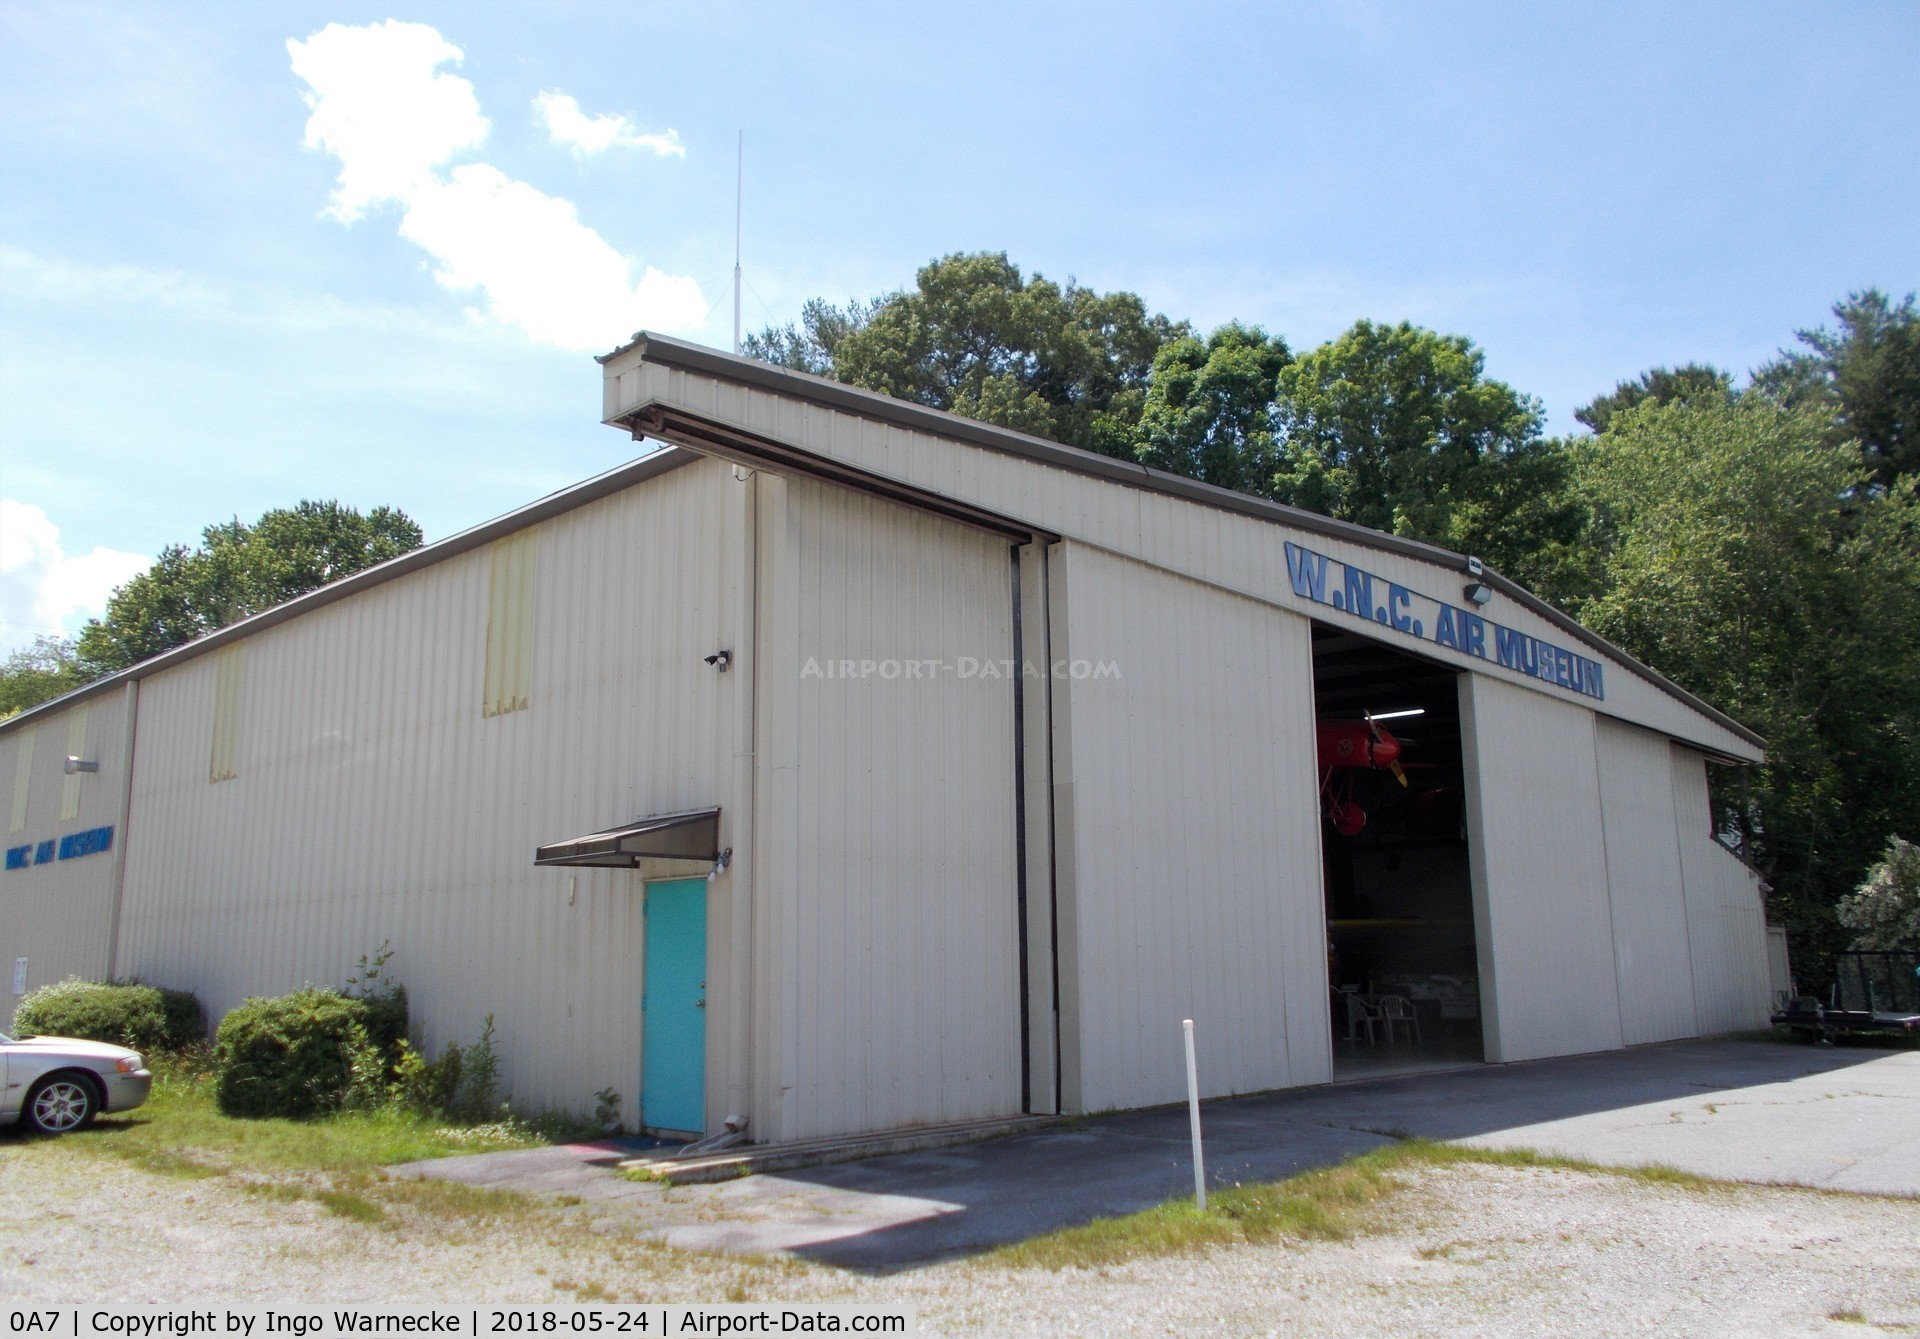 Hendersonville Airport (0A7) - the hangar of the Western North Carolina Air Museum at Hendersonville airport, Hendersonville NC